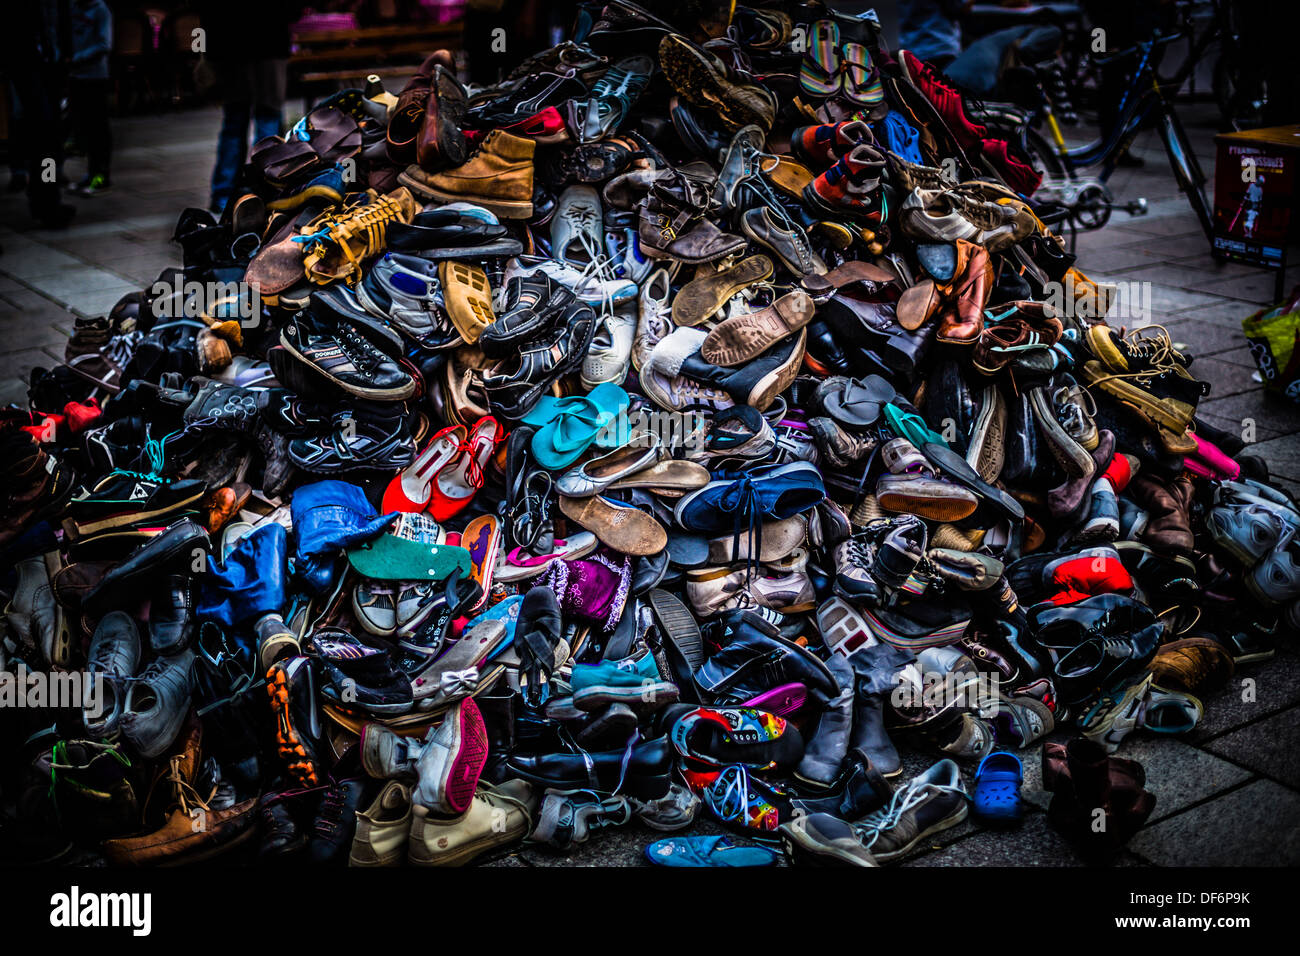 A Big Colorful Pile Of Shoes This Was Used To Show How